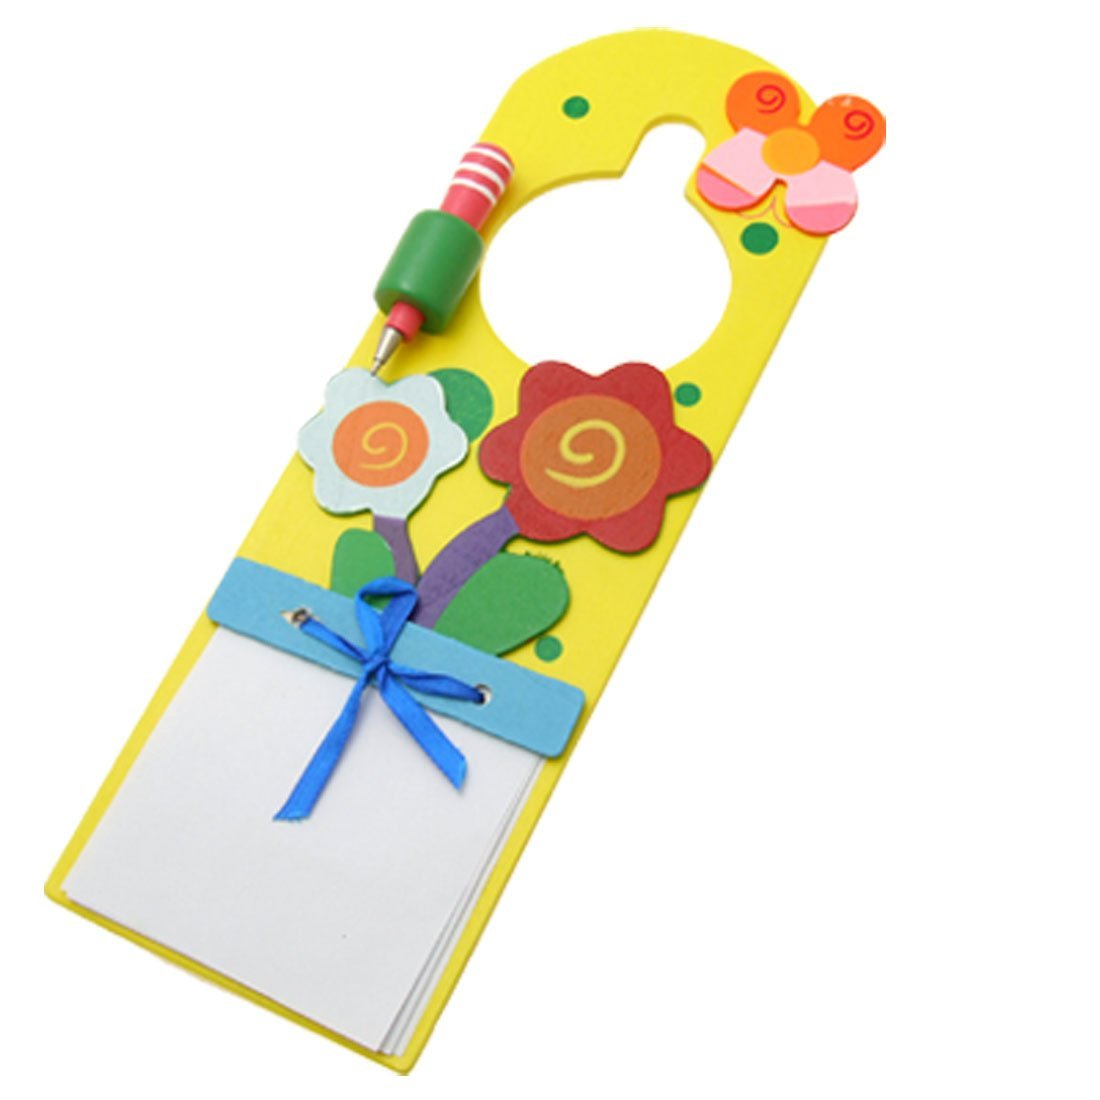 Uxcell Wooden Flower Print Memo Message Board, Colorful